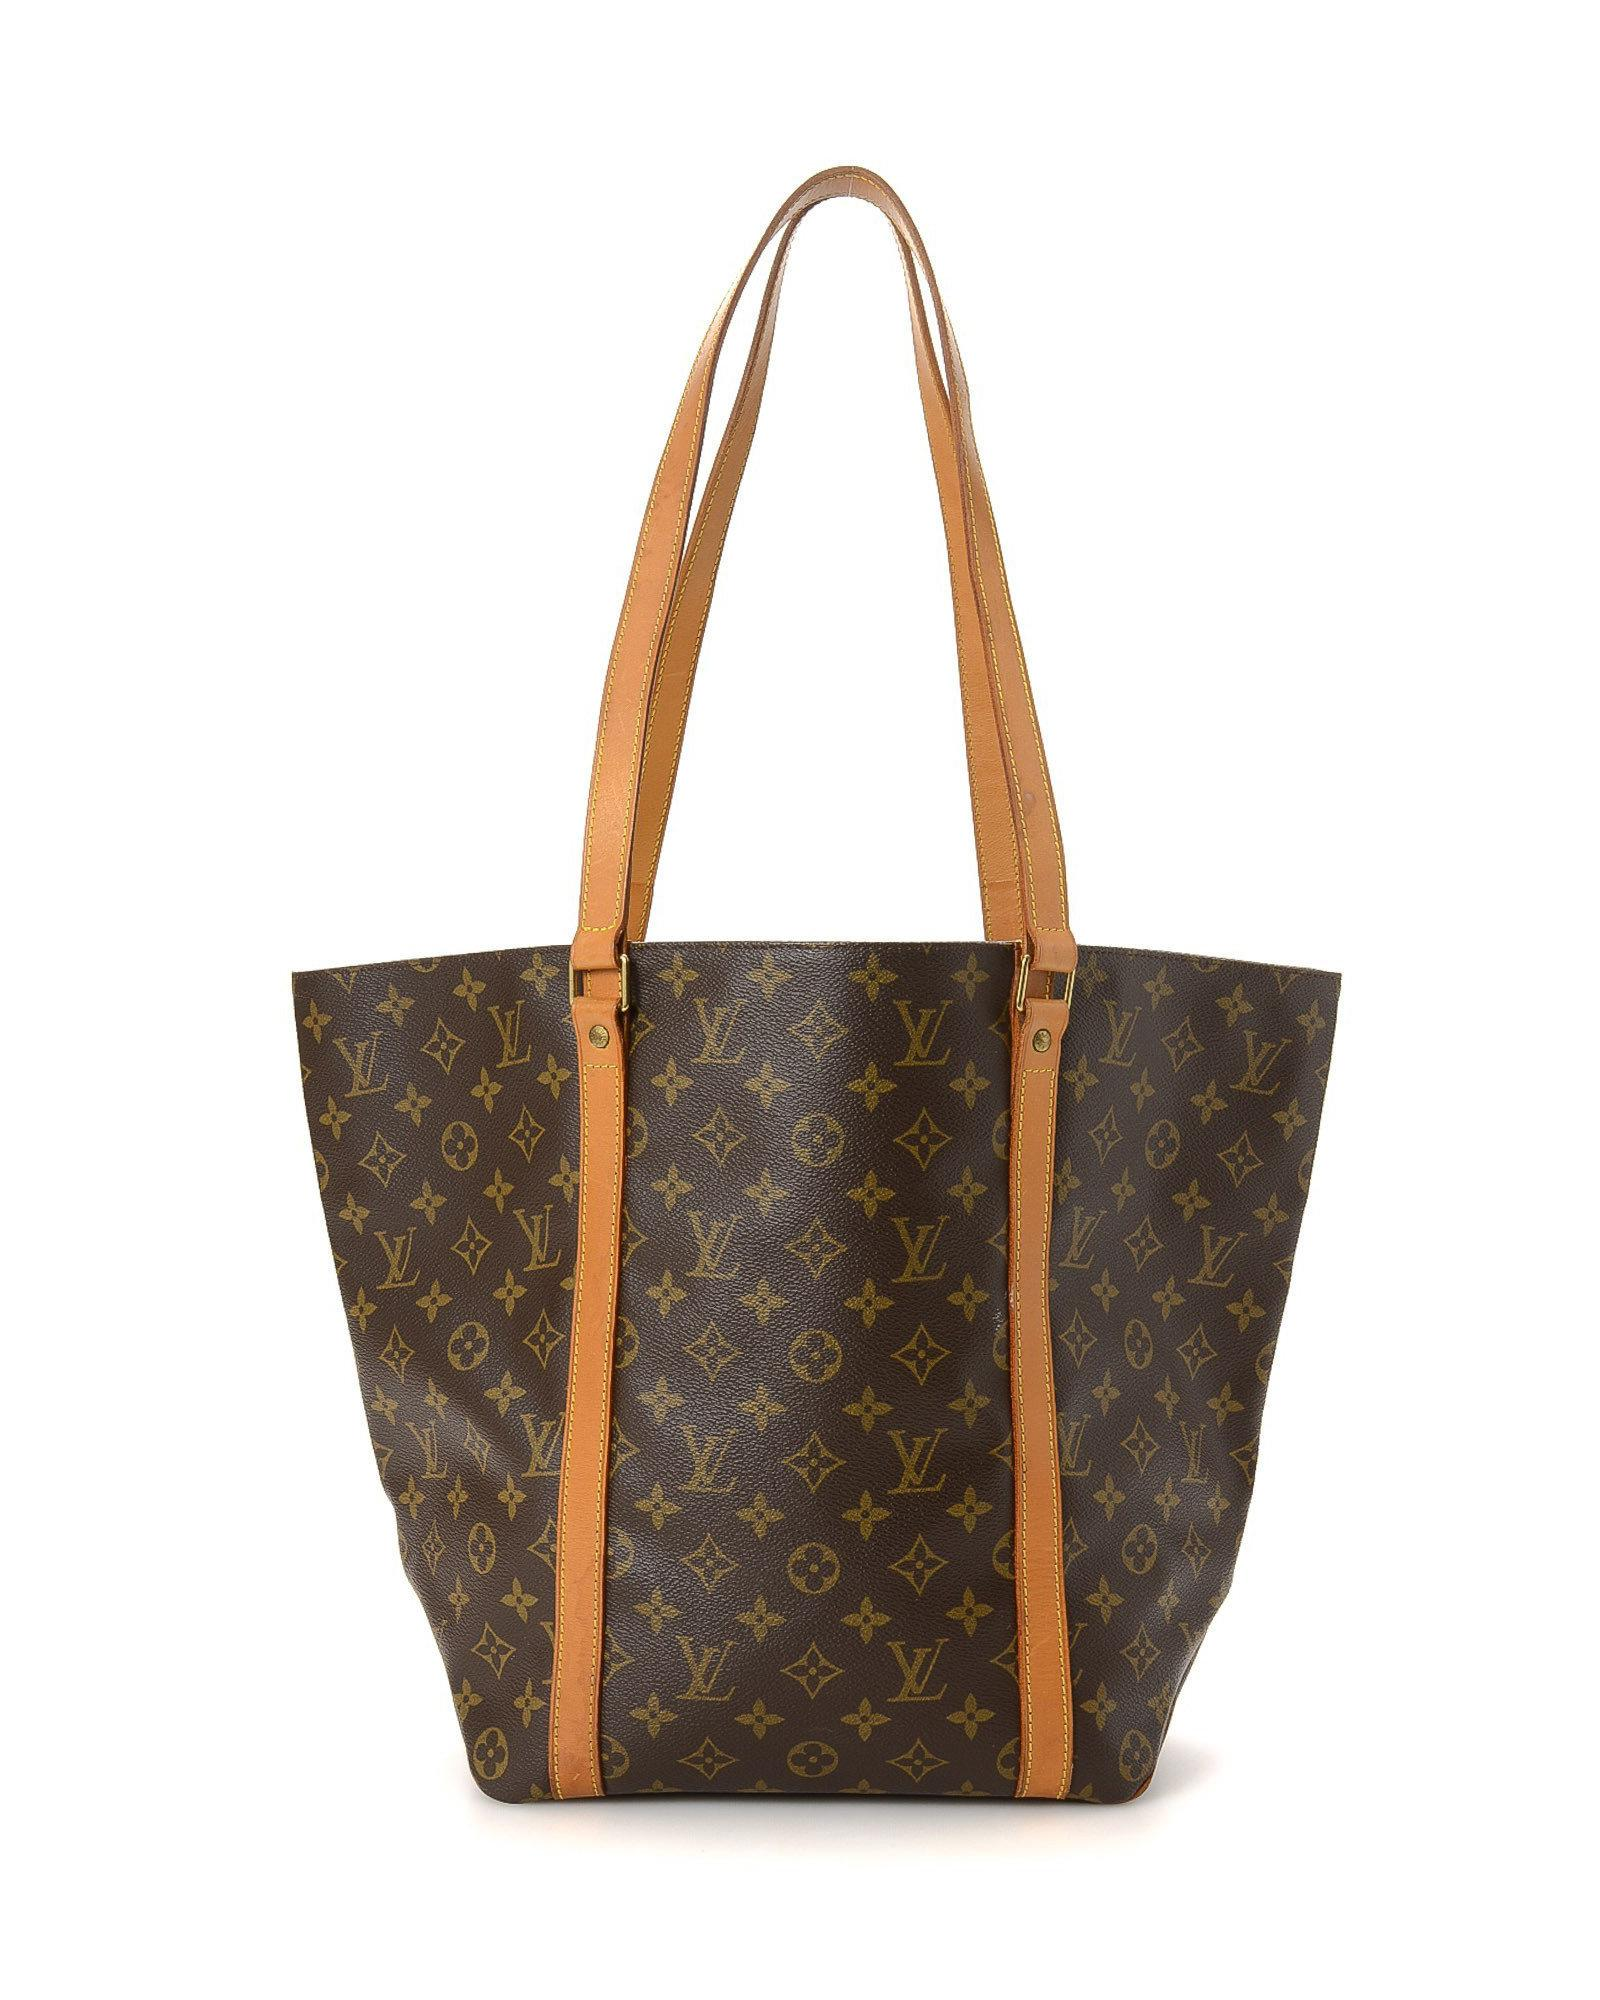 1a16e9760367 Lyst - Louis Vuitton Sac Shopping Tote - Vintage in Brown